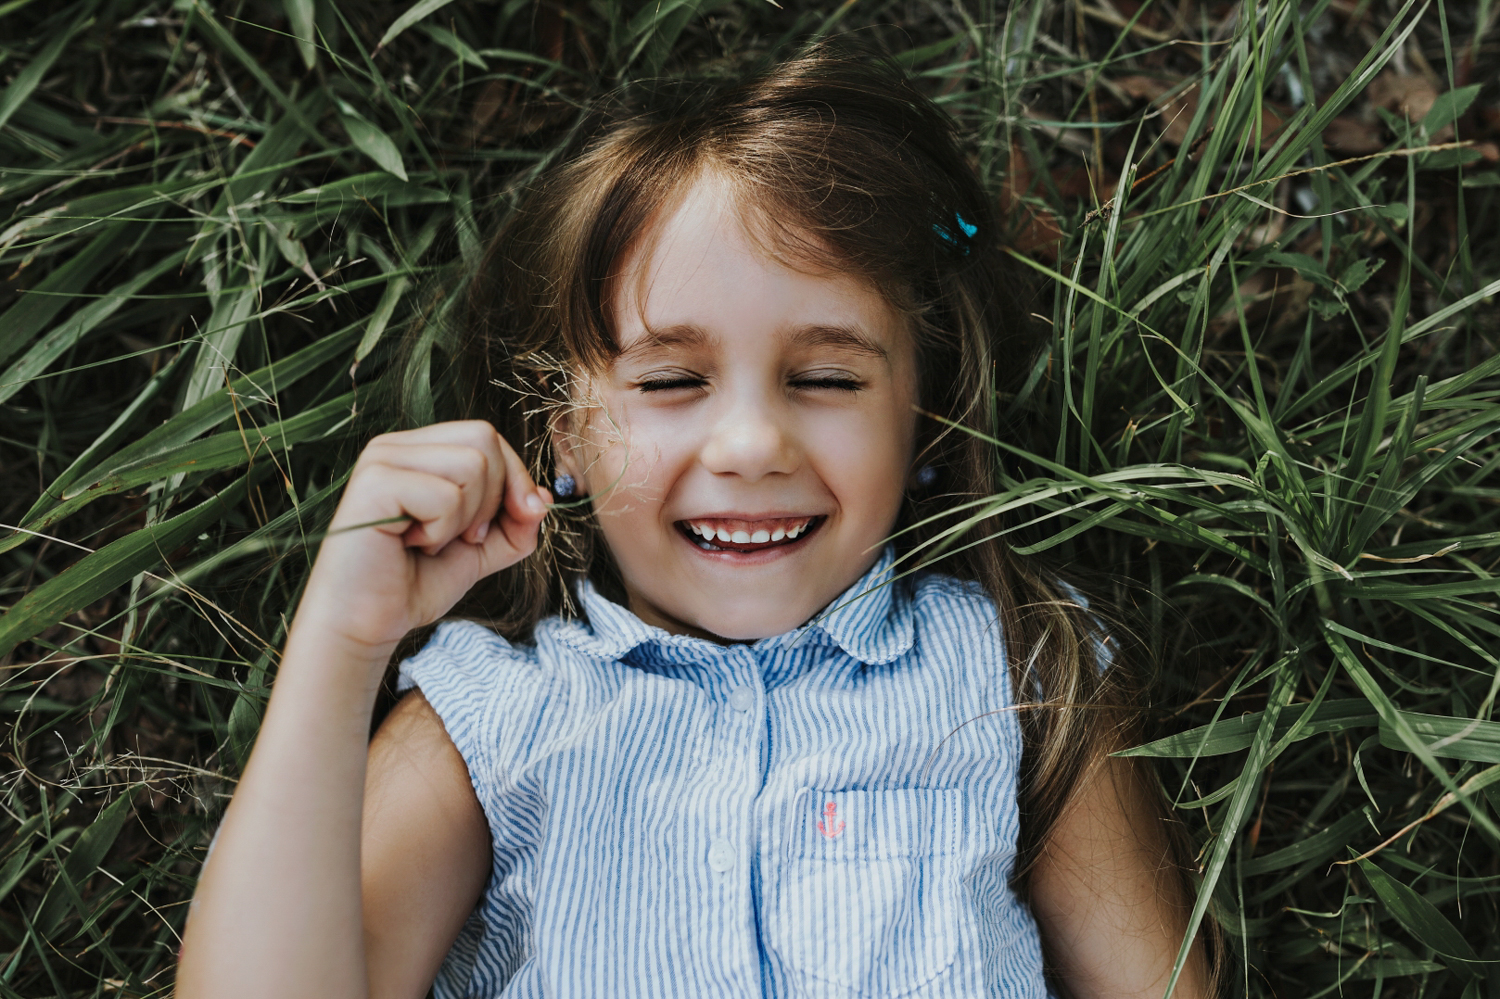 Family photography session with girl smiling in field tickling face with grass in Brisbane.